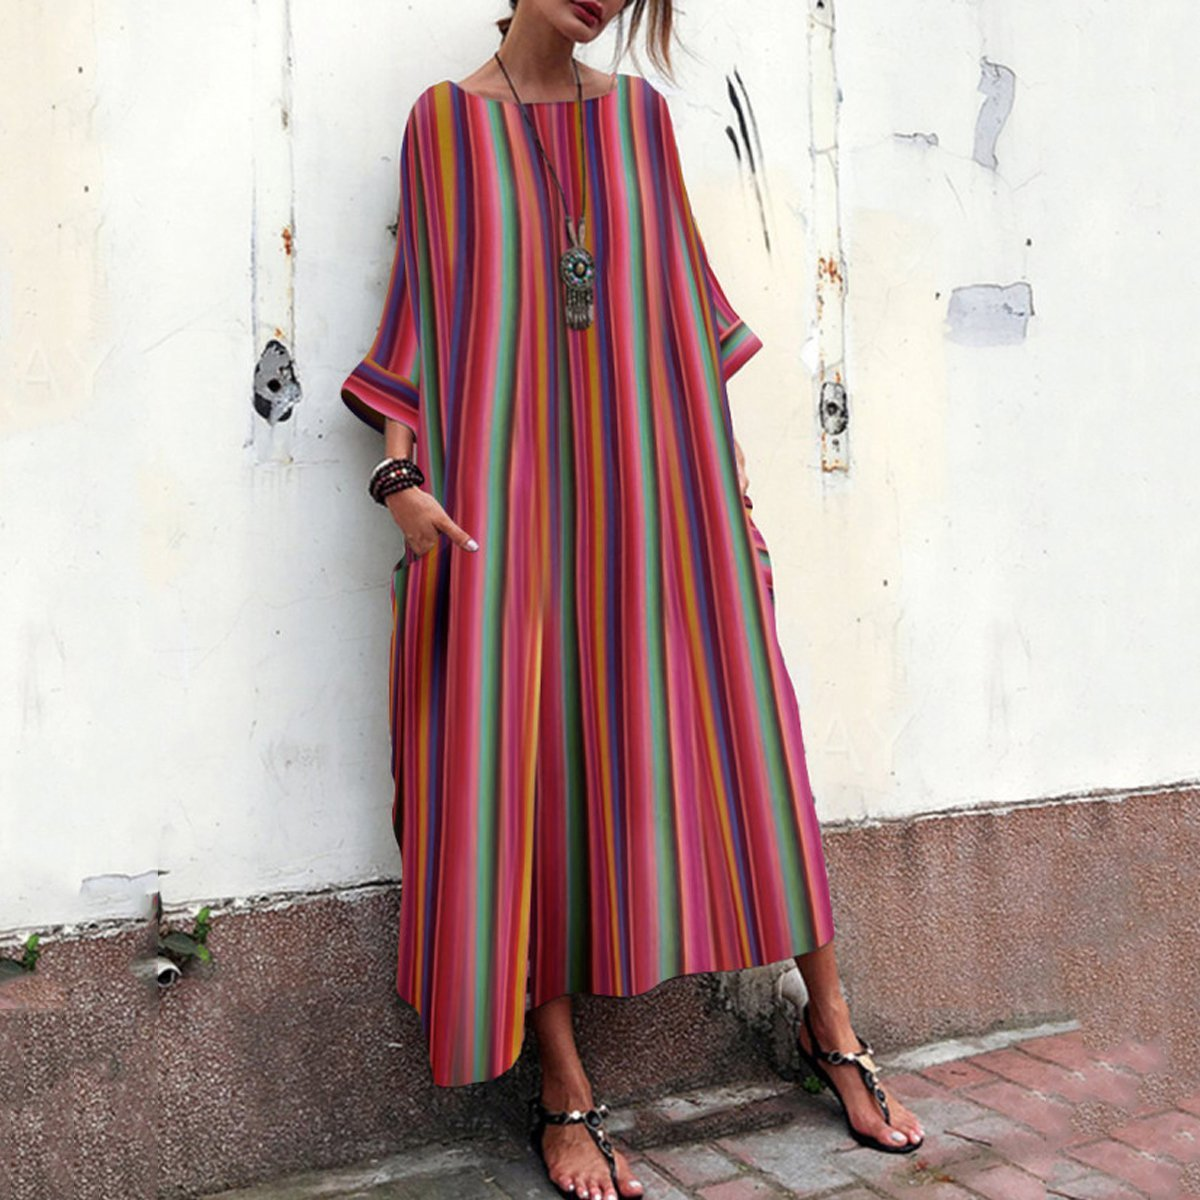 Oversized Ethnic-style Comfortable Loose Striped Crew Neck Women Dress With Pockets Colorful Stripe Printed Bohemian Dress Long